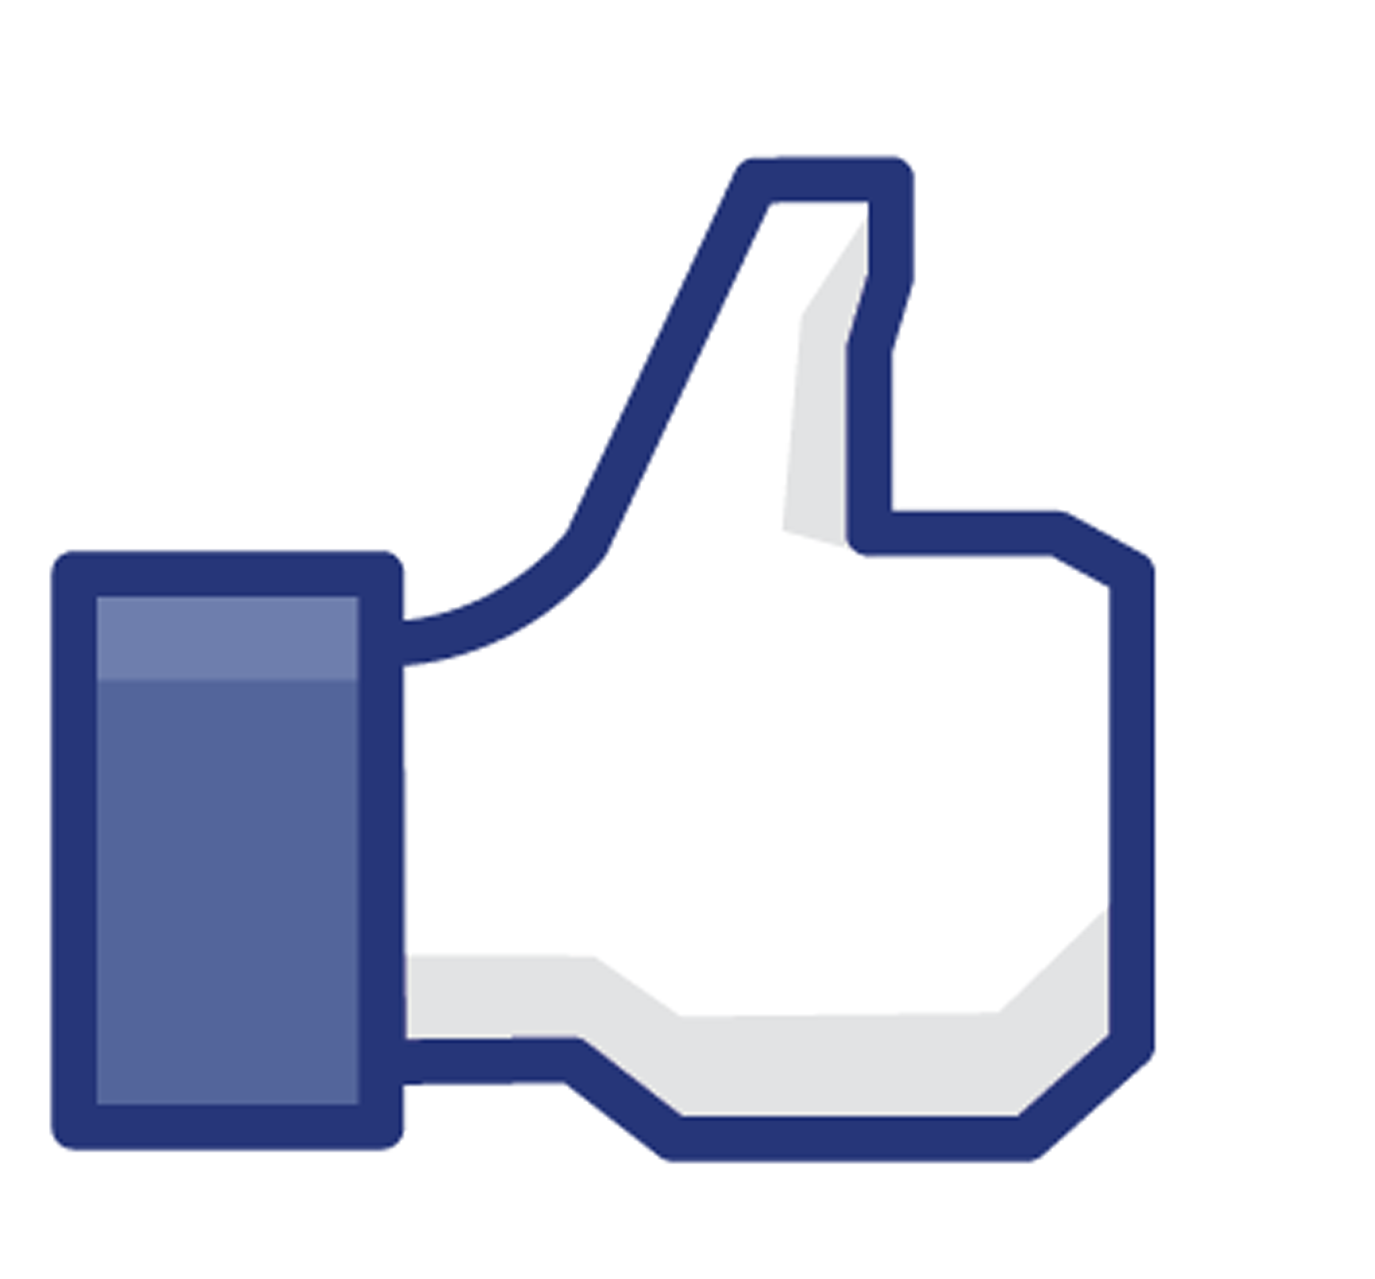 chiefit - facebook like button